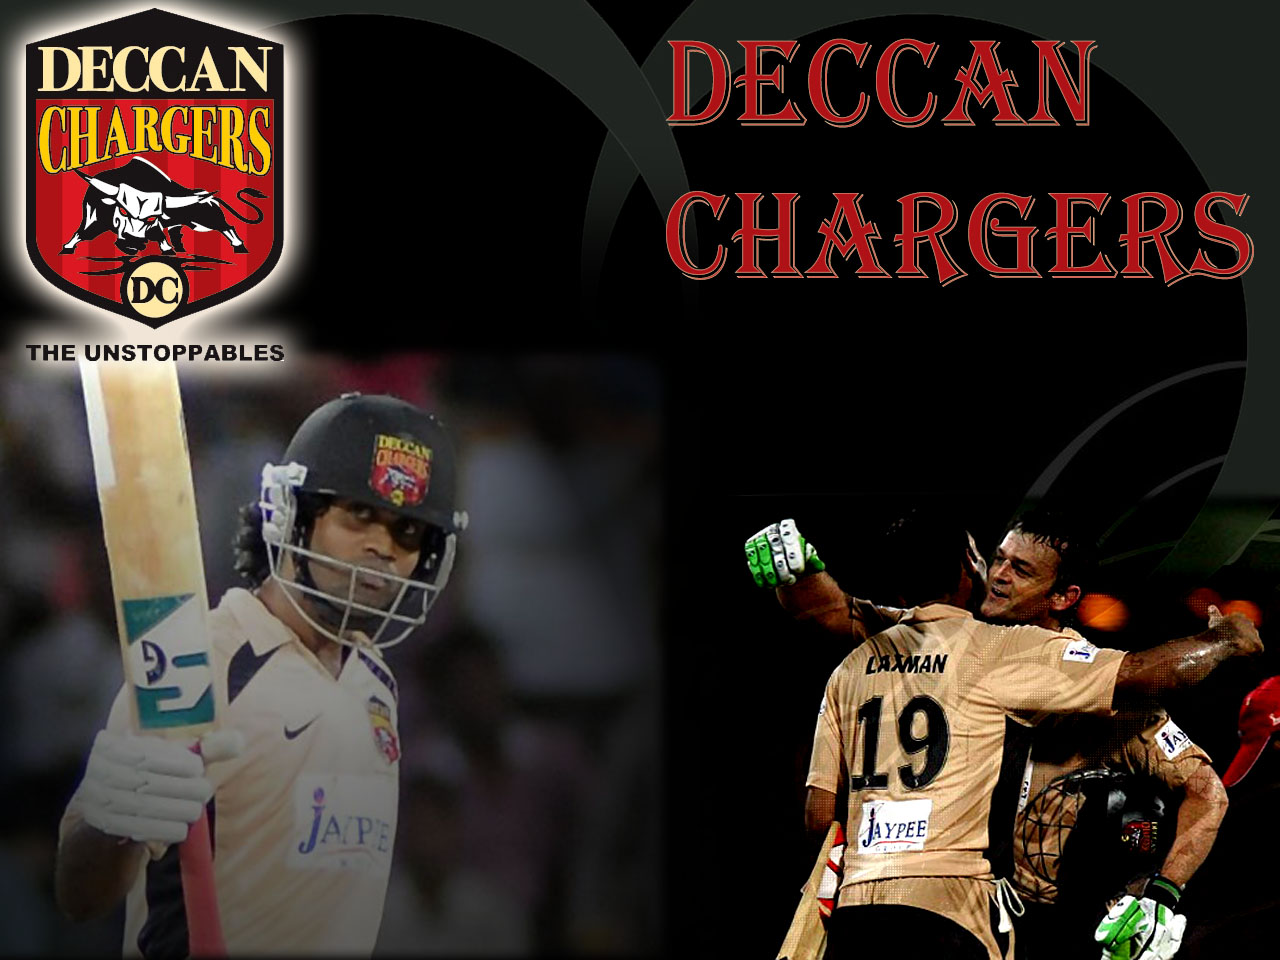 """The Unstoppable"" Deccan Chargers Wallpaper"